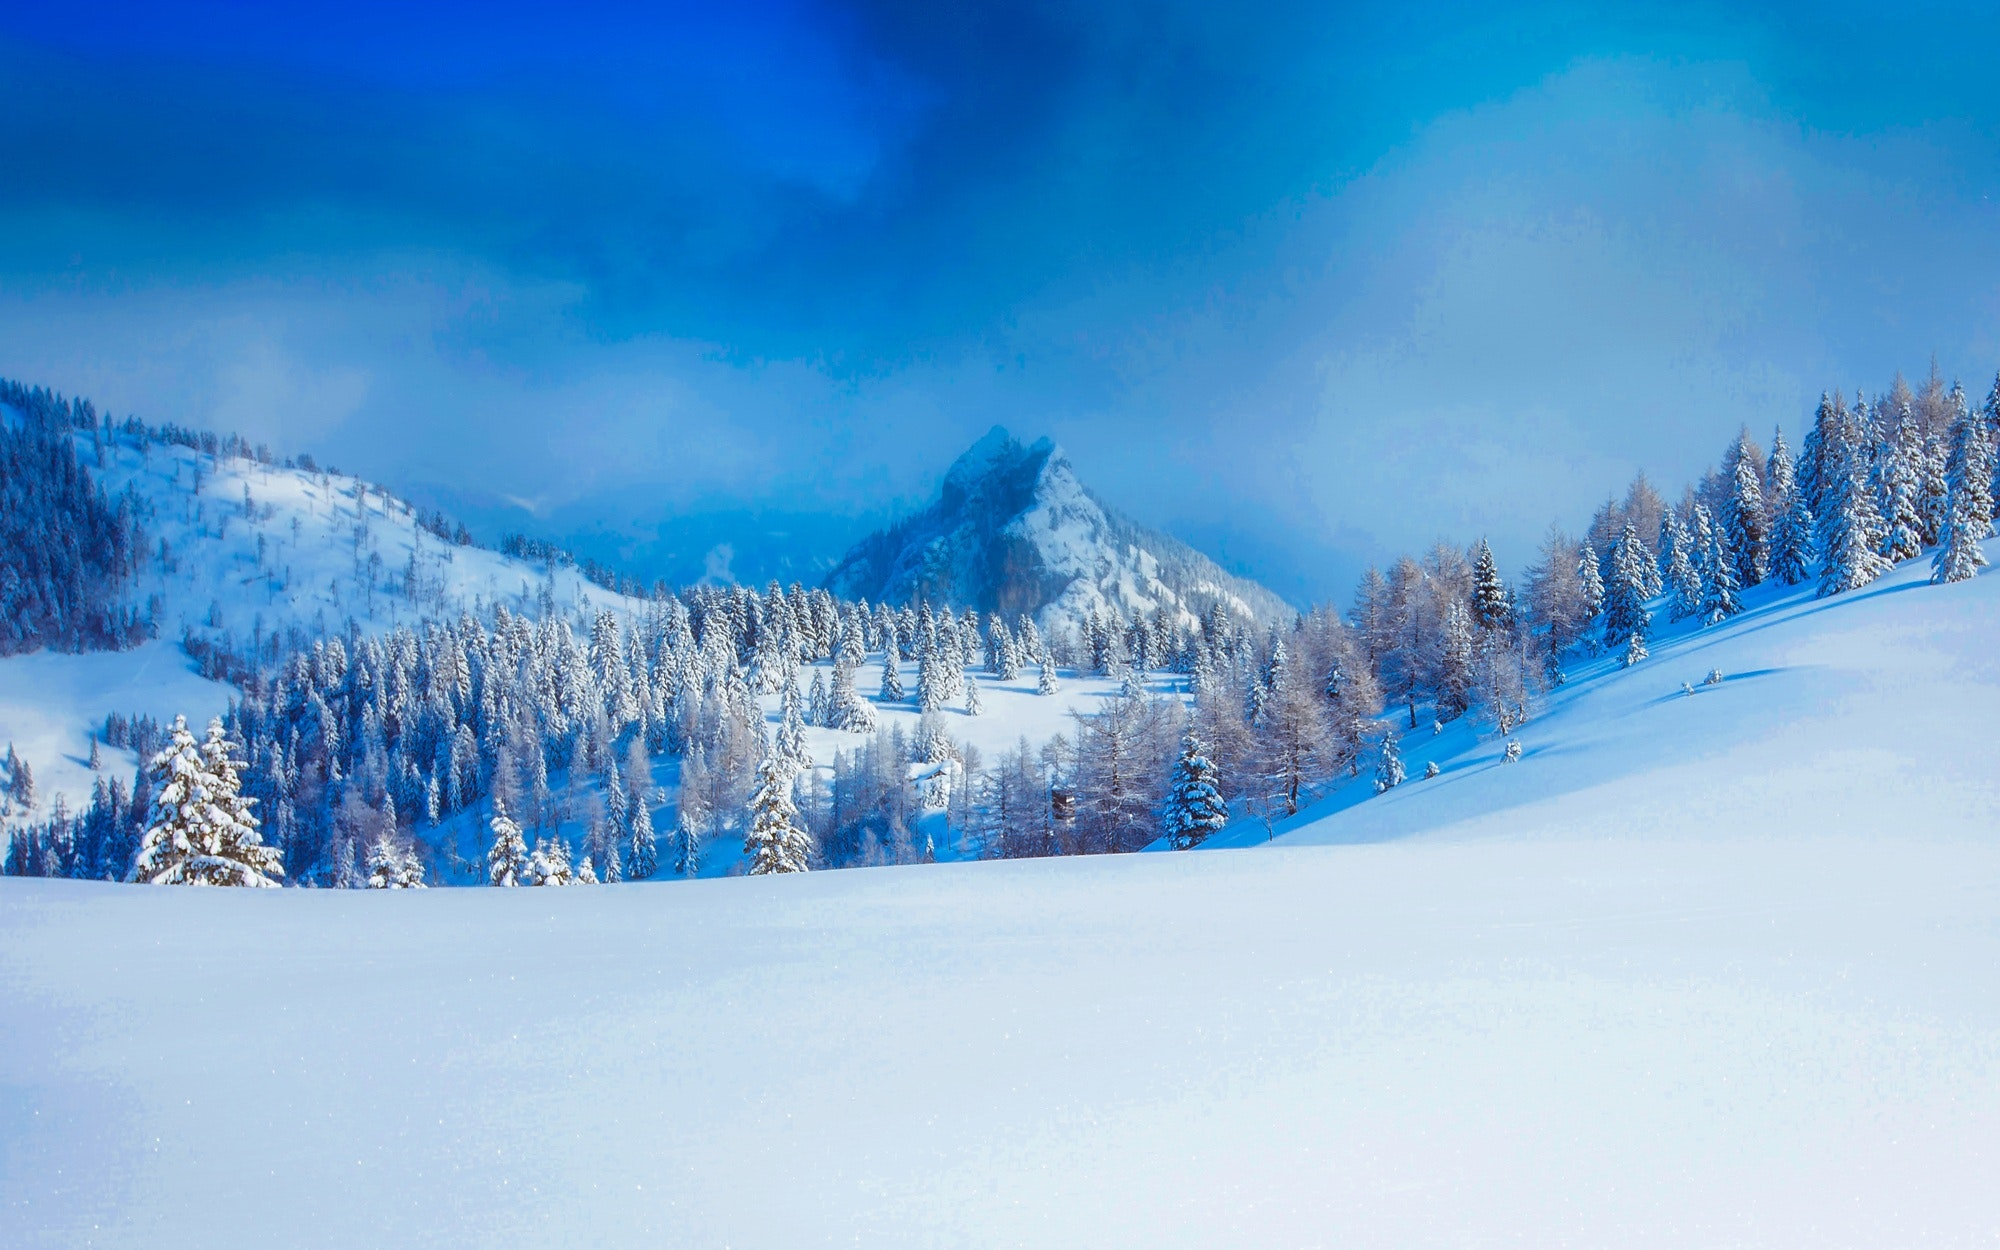 Panoramic View of Trees on Snow Covered Landscape, Beautiful, Snow, Winter, Wilderness, HQ Photo